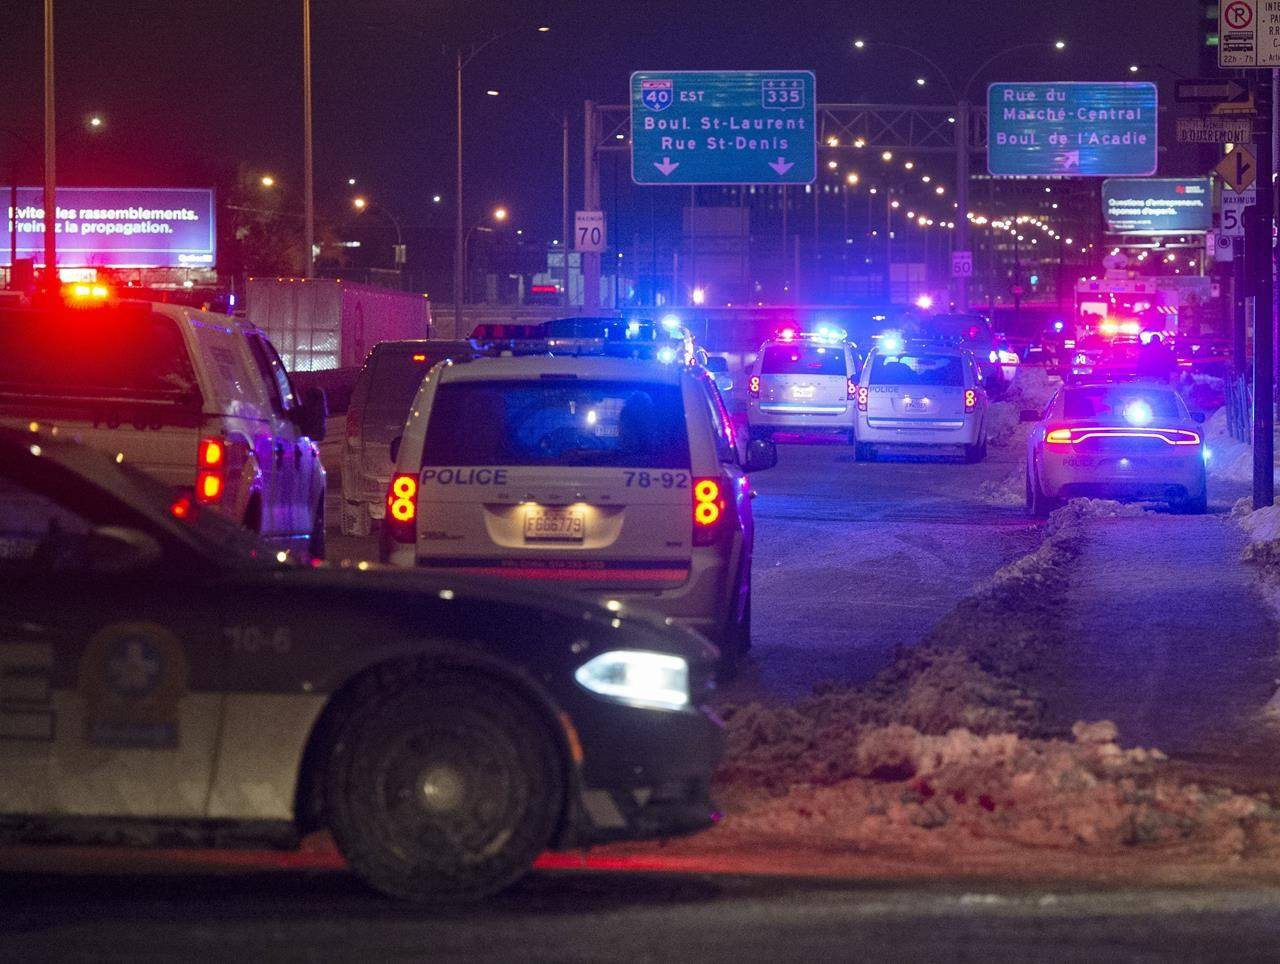 Police cordon off the area where an officer was injured during a traffic stop Thursday, Jan. 28, 2021, in Montreal. Montreal police say they've found a vehicle today believed to have been used by a suspect in an assault on a police officer last week. THE CANADIAN PRESS/Ryan Remiorz